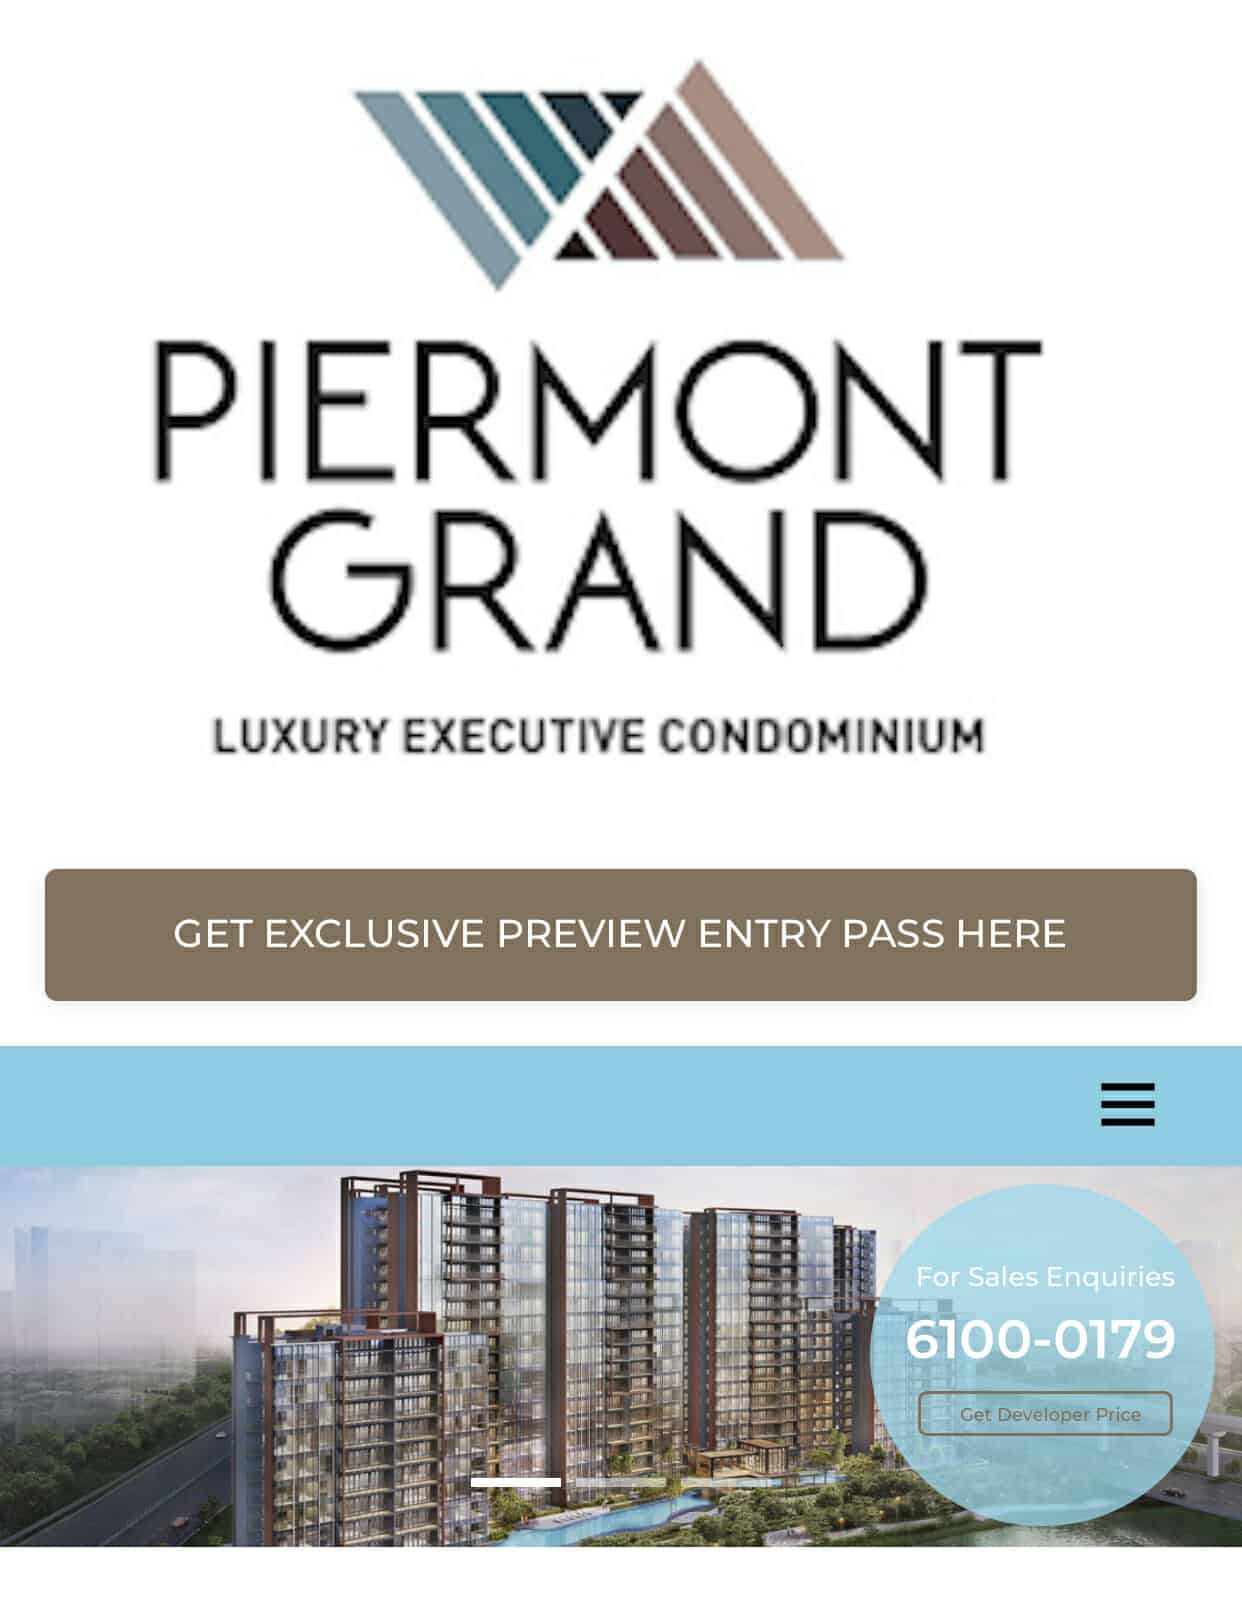 Piermont Grand EC at Punggol